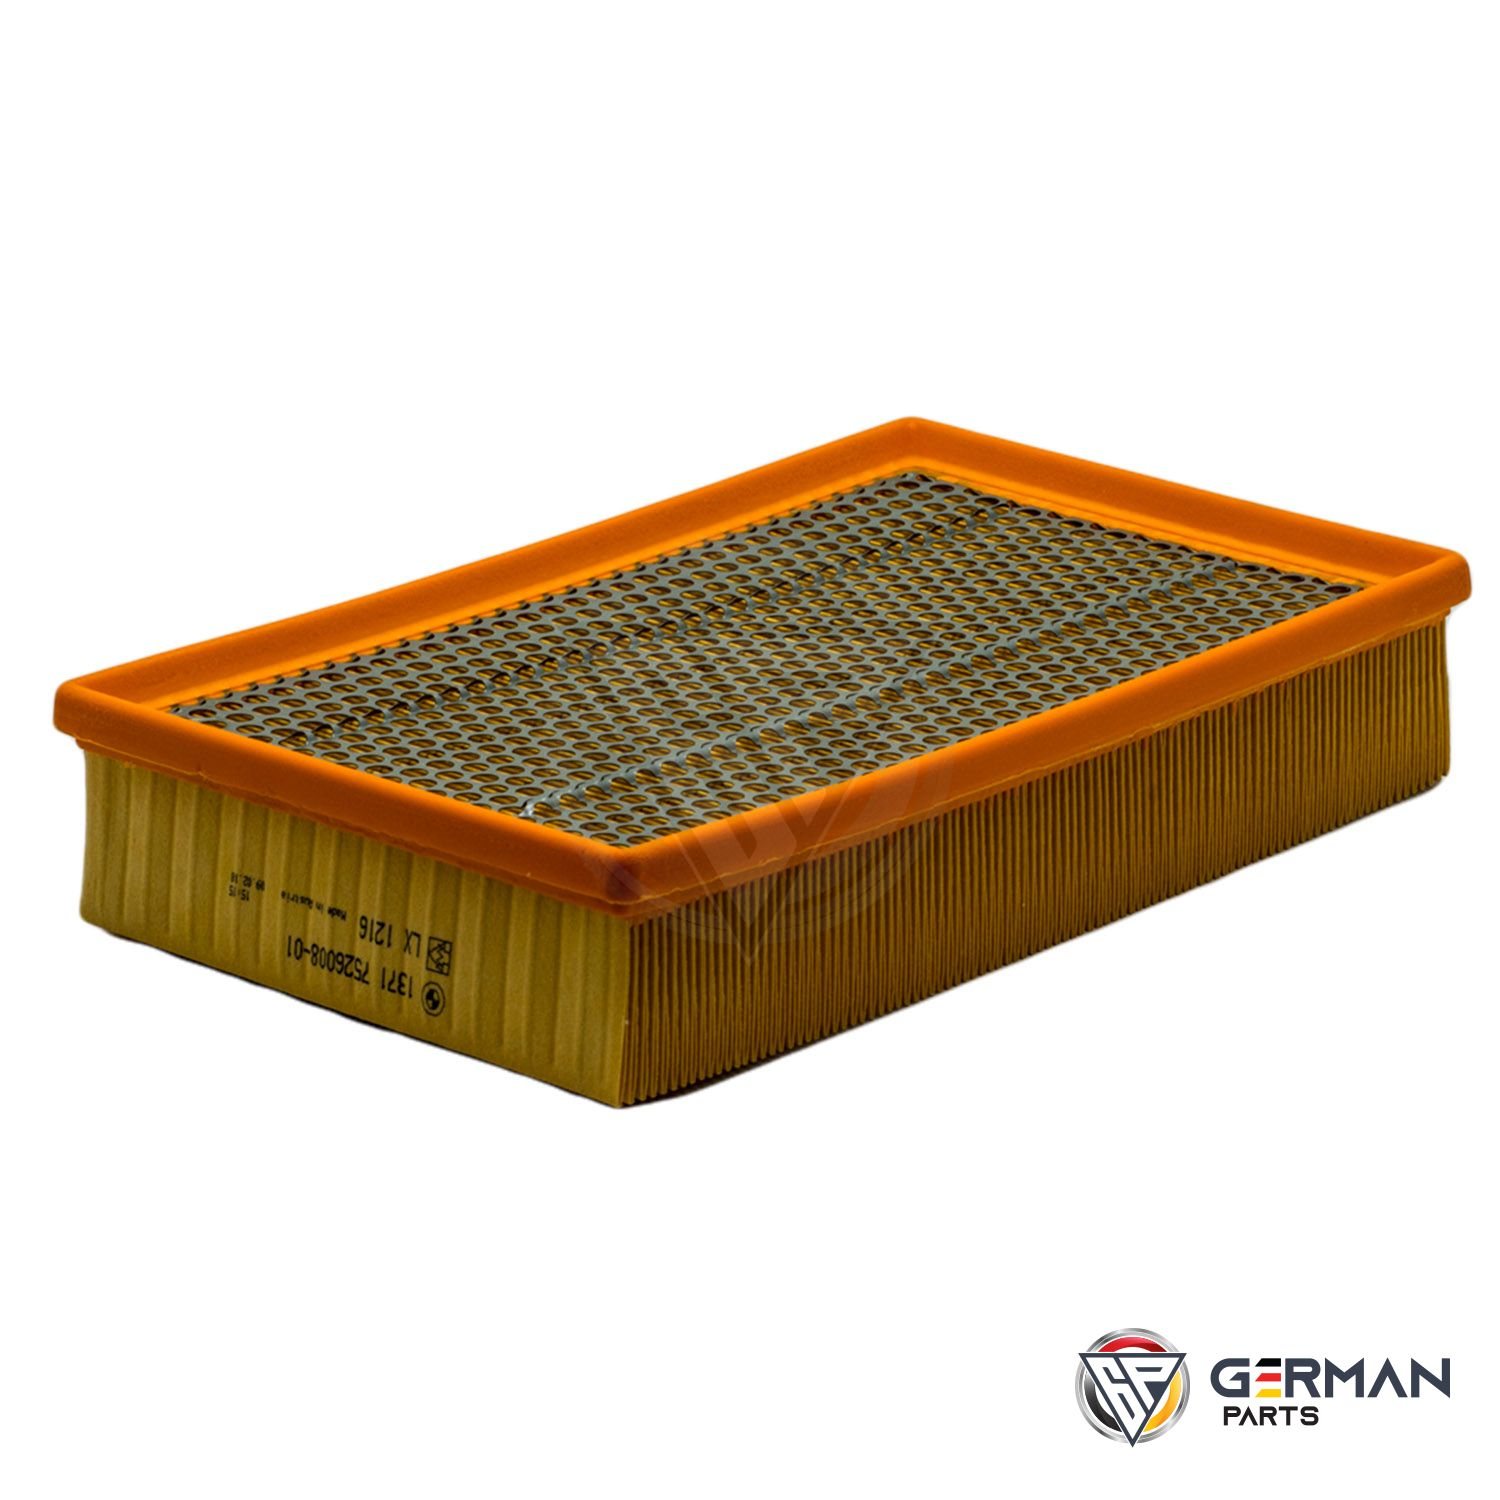 Buy Genuine BMW Air Filter 13717526008 - German Parts